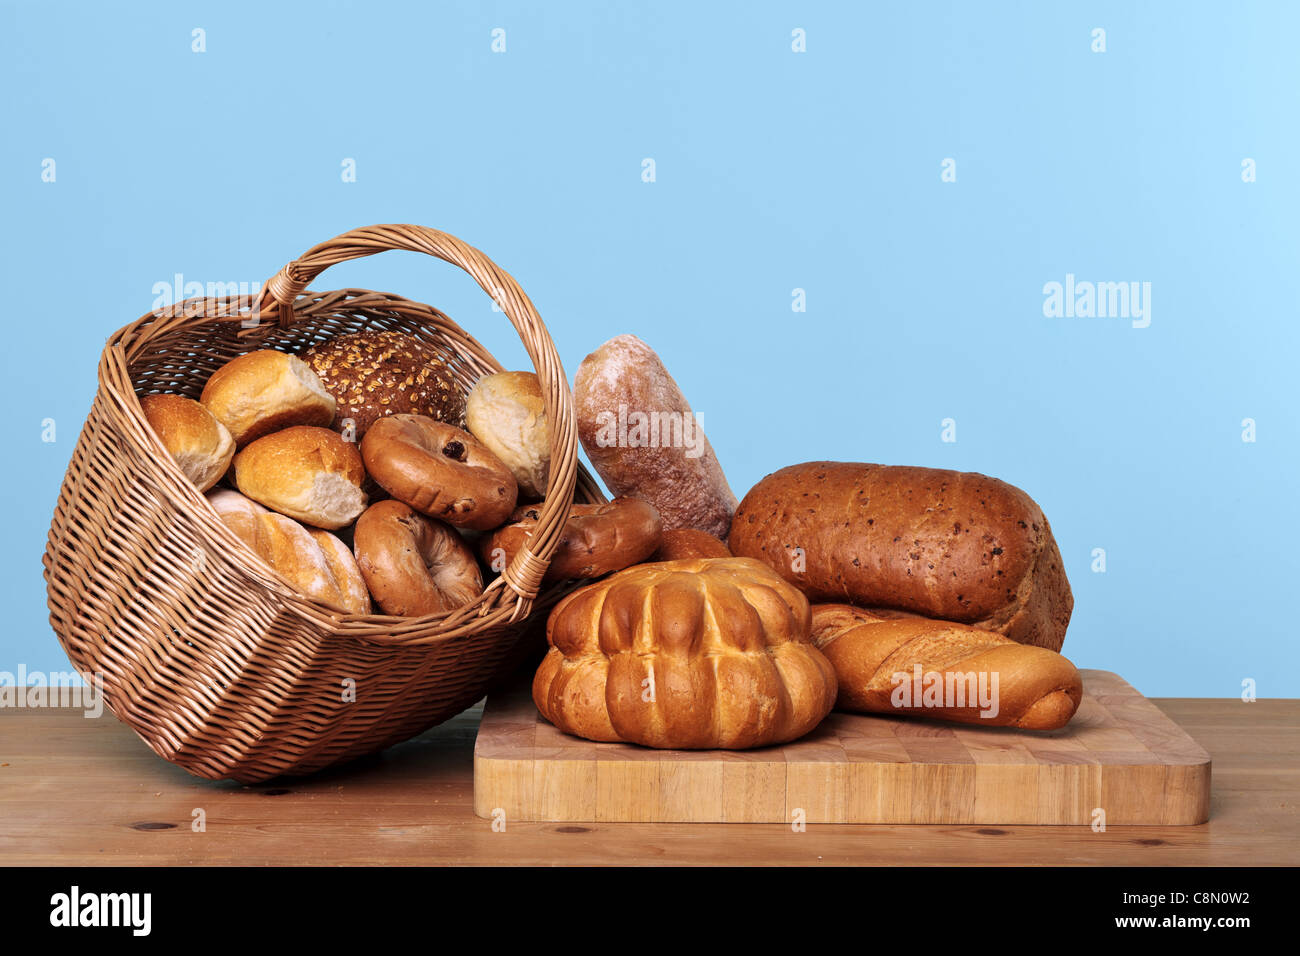 Photo of various types of bread loaves and rolls in a wicker basket on a wooden table with blue background. - Stock Image